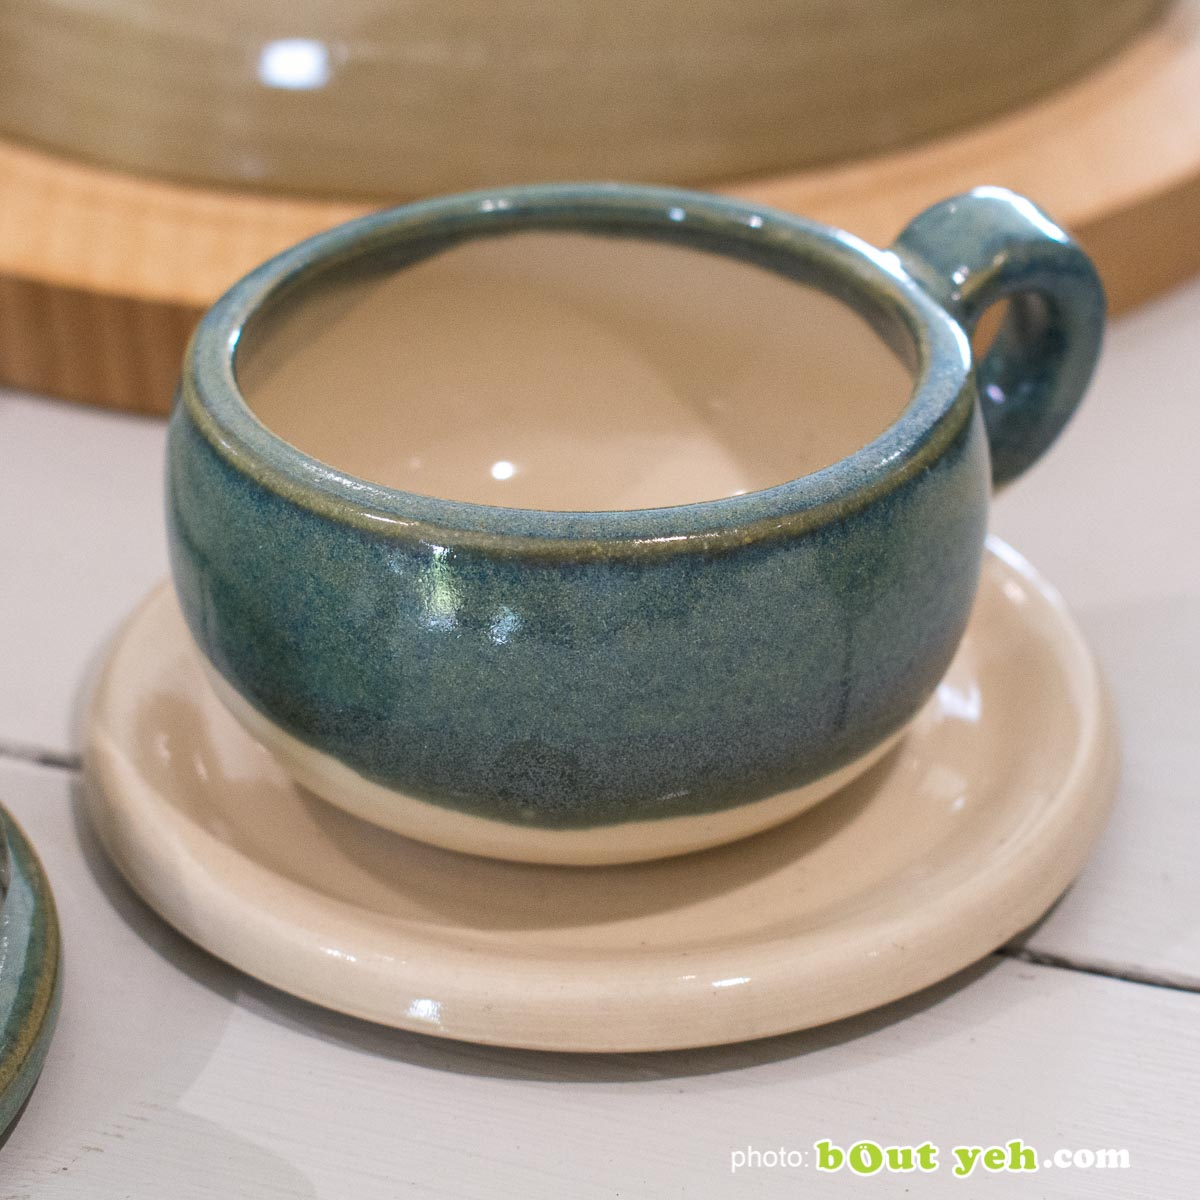 Contemporary Irish homeware ceramics -  hand made green, blue and white espresso set from Bout Yeh art and crafts gallery Belfast and Dublin. Photo 1457